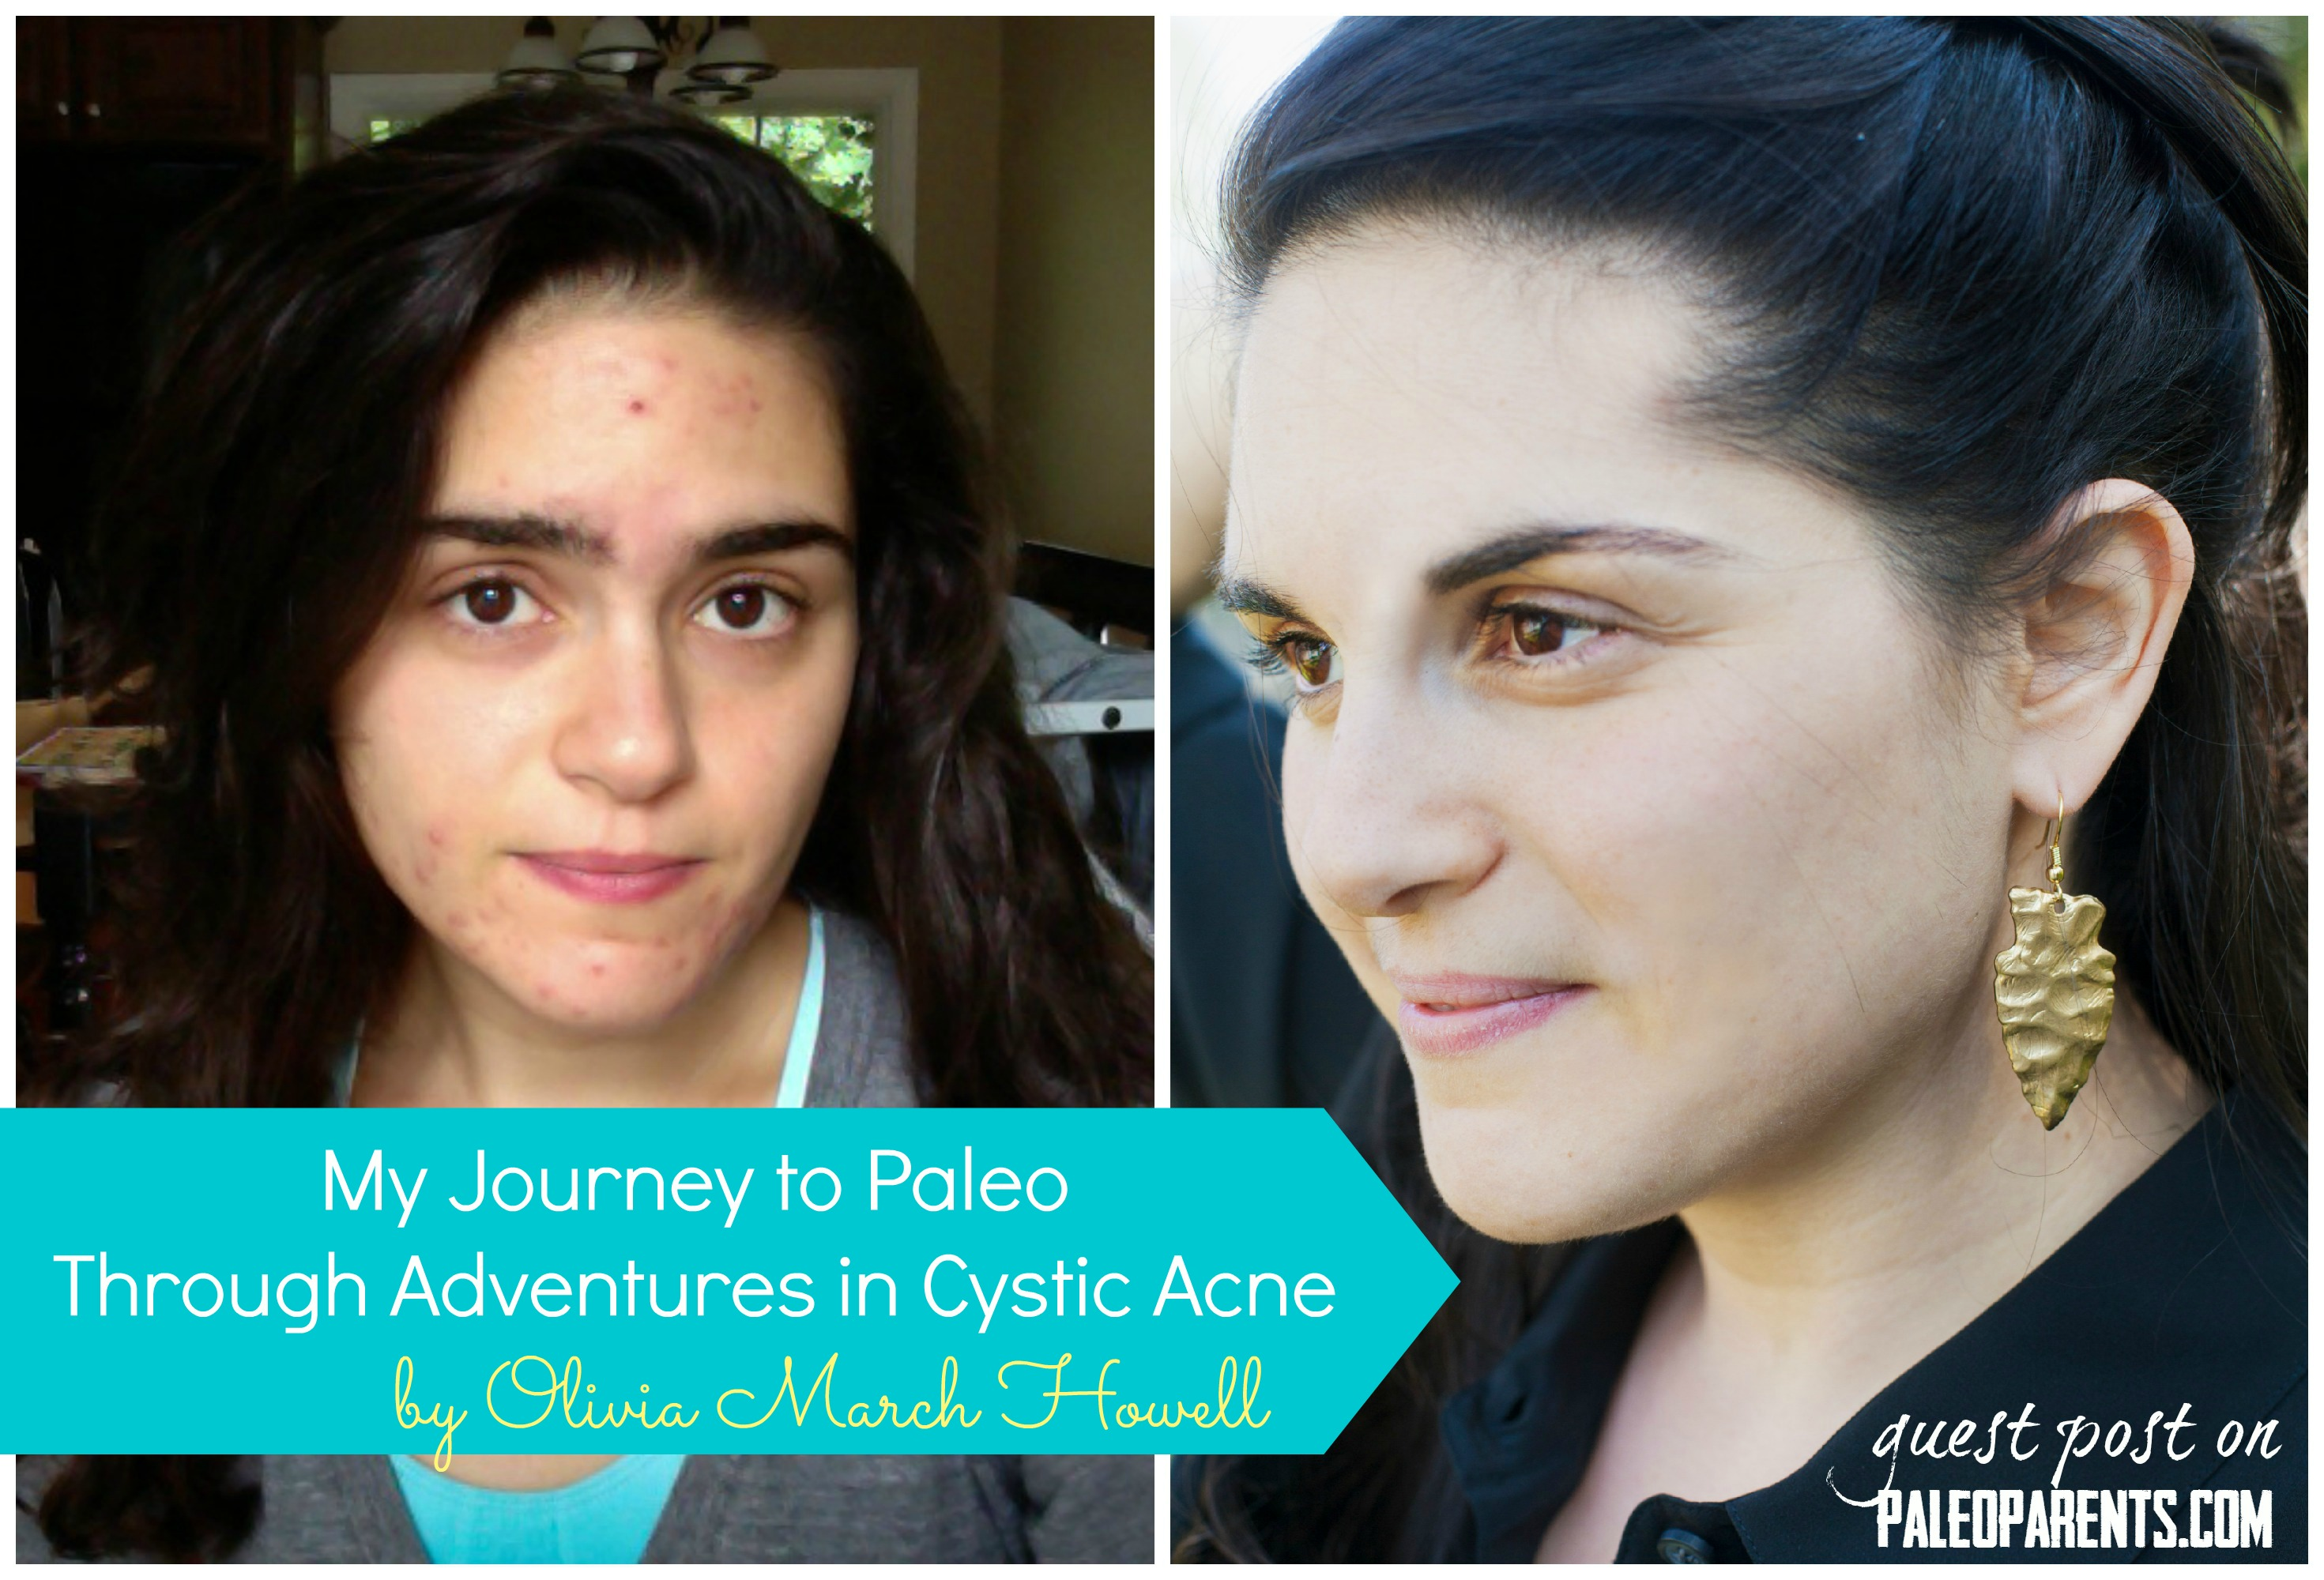 Guest Post: My Journey to Paleo Through Adventures in Cystic Acne